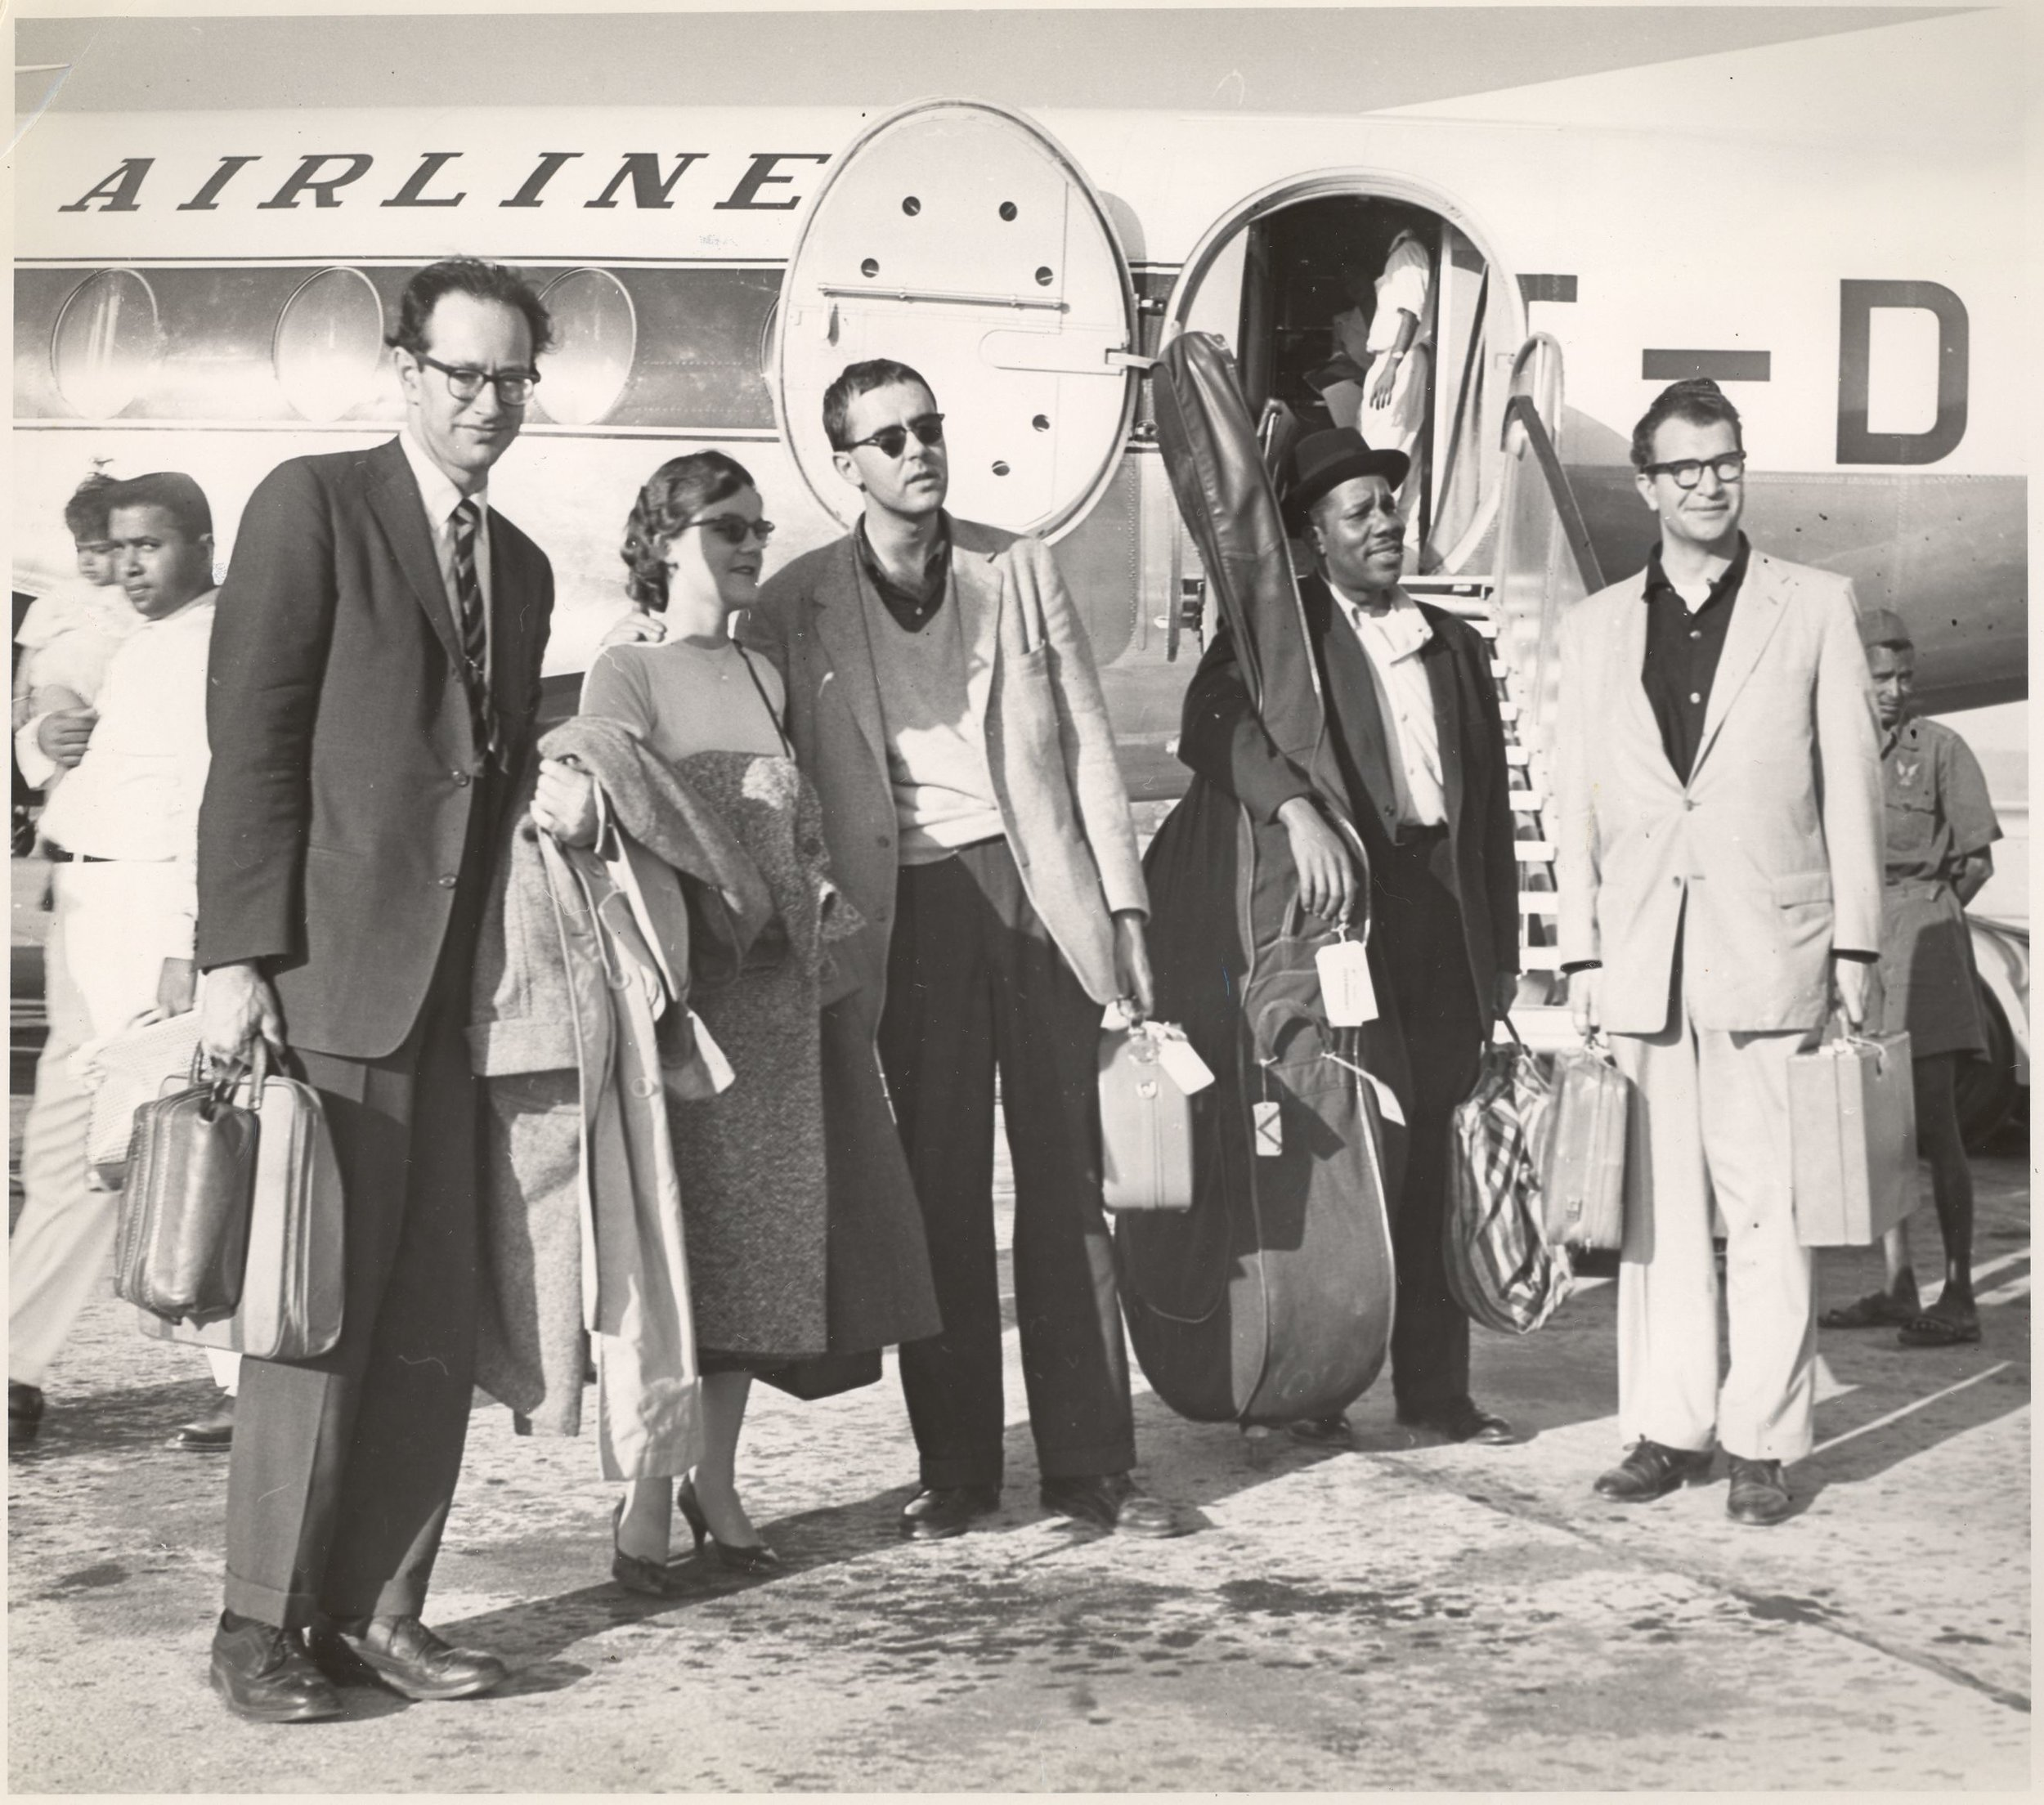 The Dave Brubeck Quartet on tour in 1958; right to left: Dave Brubeck, Eugene Wright, Joe Morello and his wife Jean, and Paul Desmond. Credit: Courtesy of the Brubeck Collection, Holt-Atherton Special Collections, University of the Pacific Library. (c) Dave Brubeck.